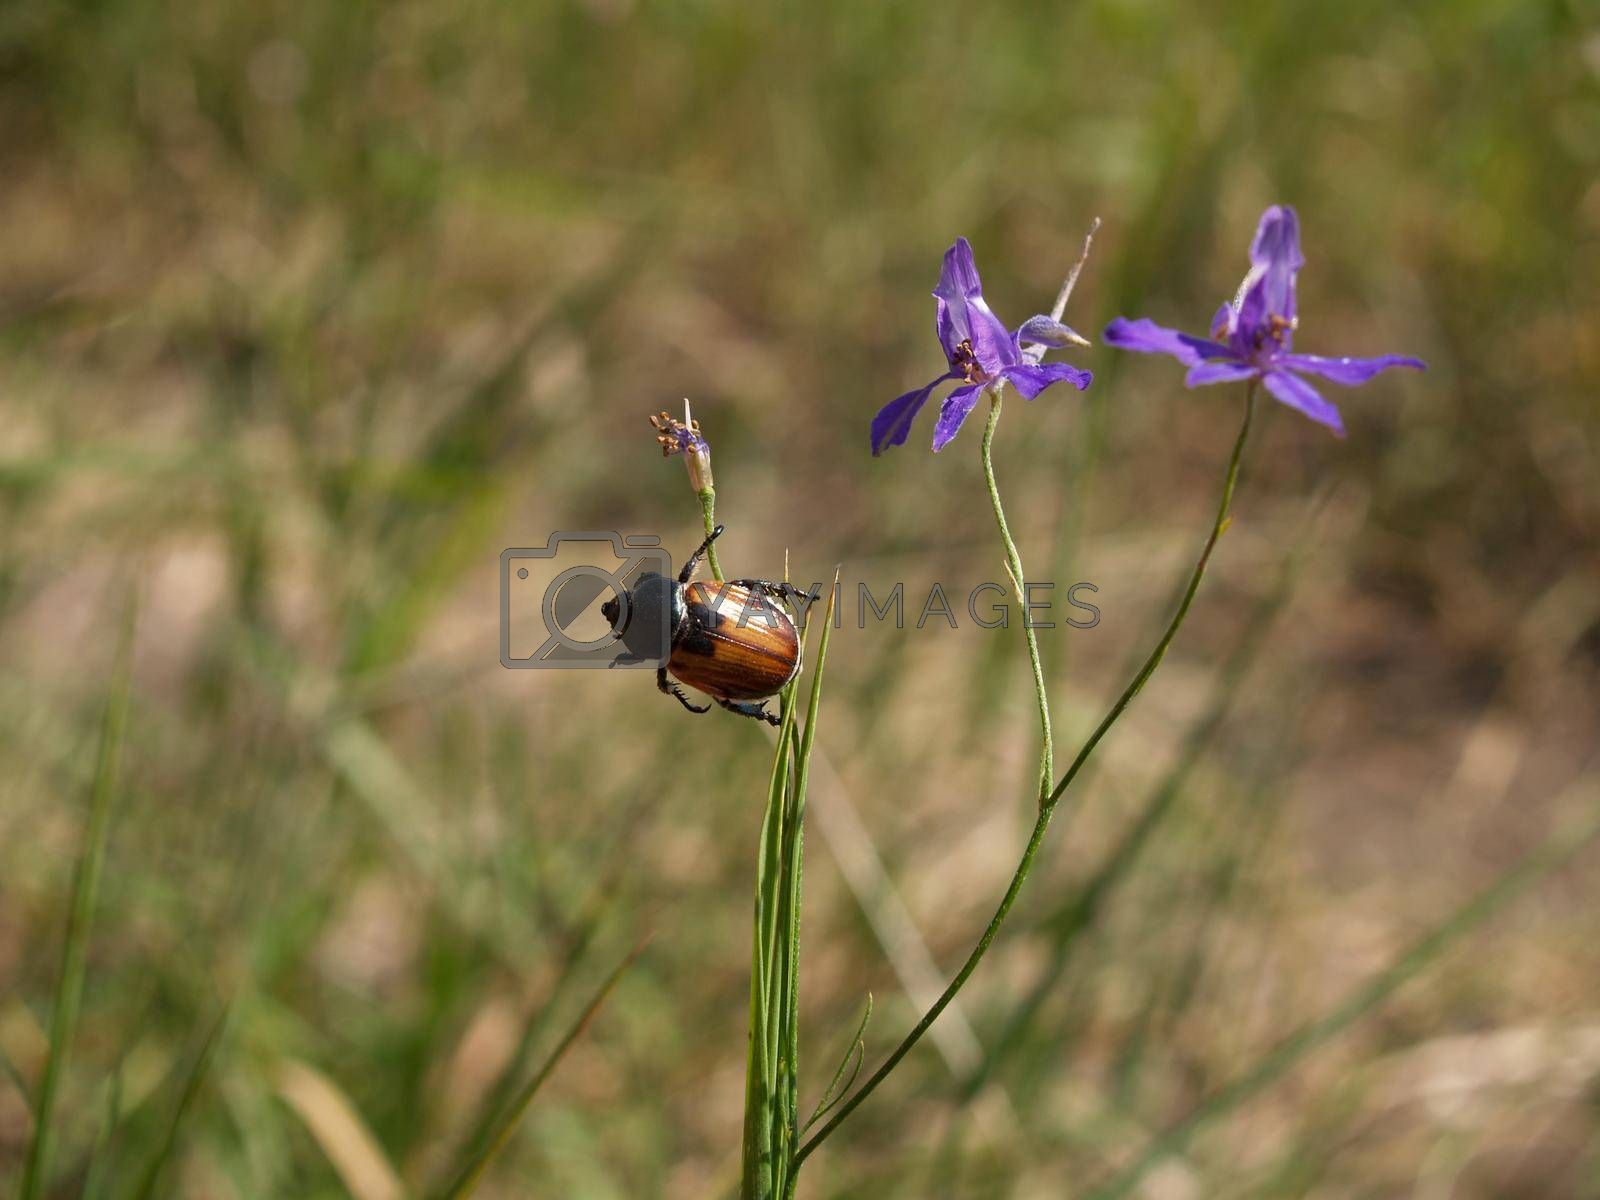 Royalty free image of Anisoplia segetum. The beetle hangs on the stem of the flower. Beetle acrobat. The beetle holds onto the flower. by Jannetta